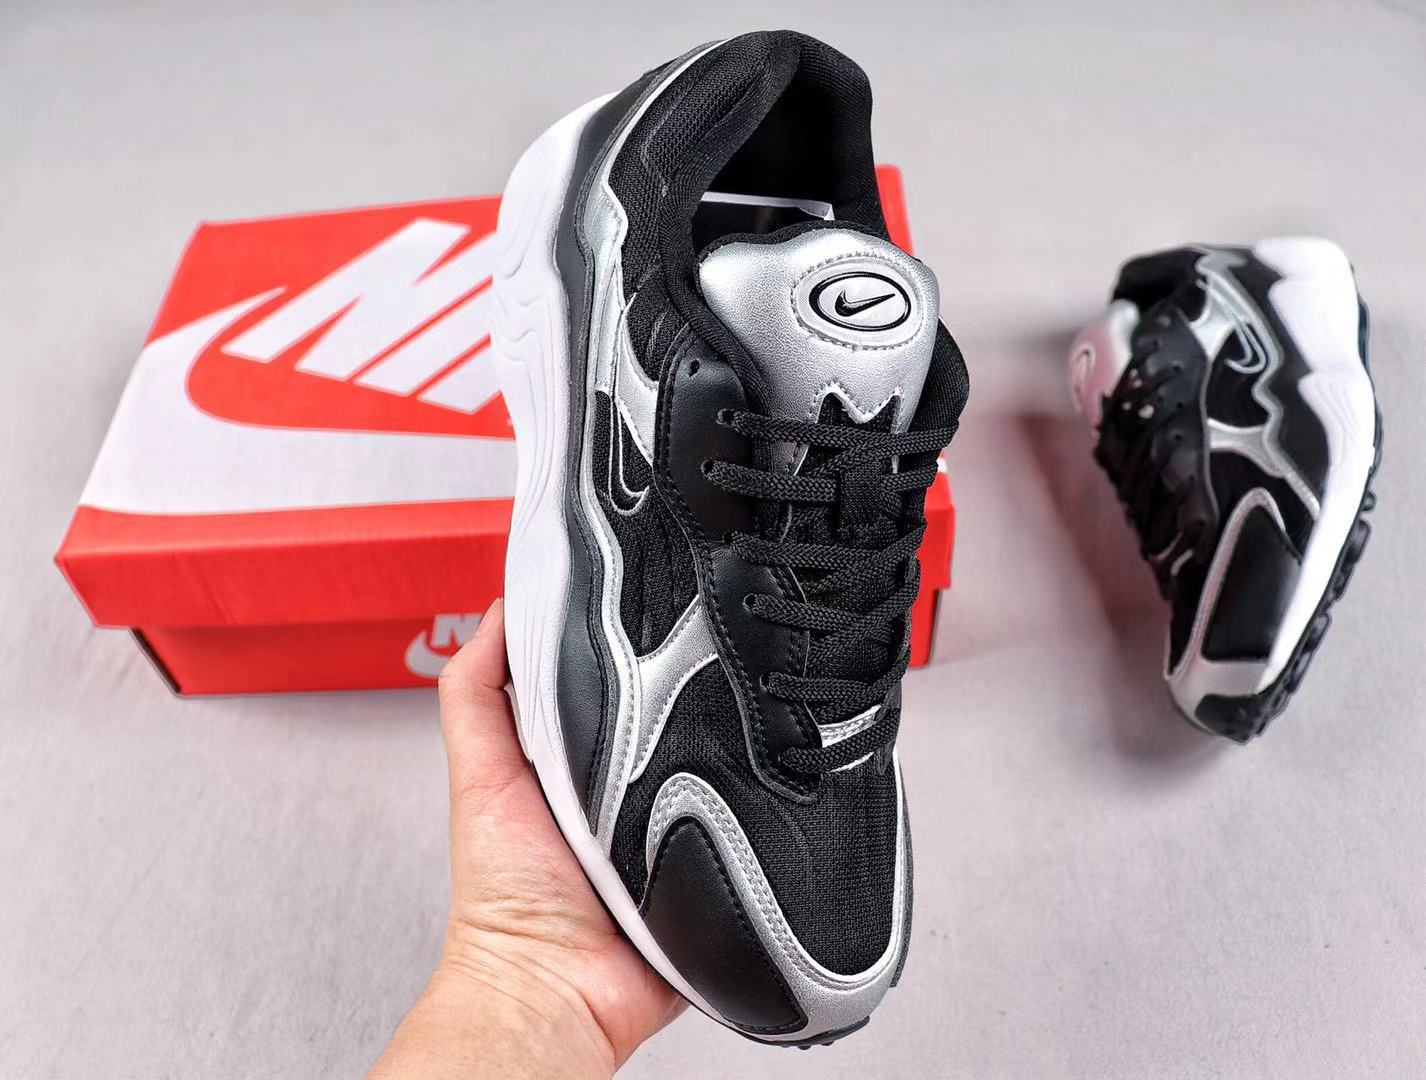 Buy Nike Zoom Alpha Black/Metallic Silver Newest Sneakers BQ8800-004